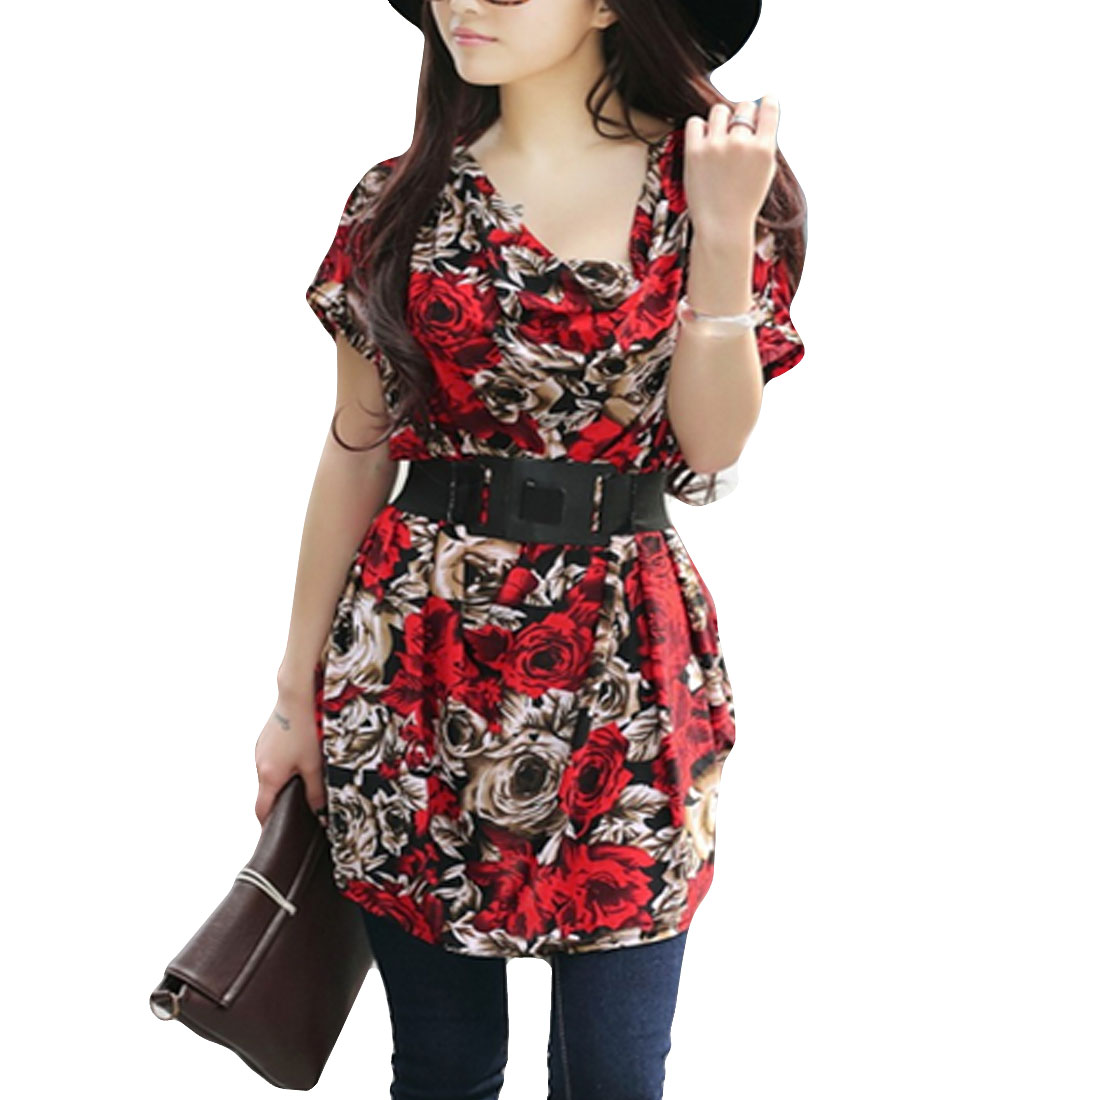 Shawl Collar Batwing Sleeve Dress Red Brown M w Waist Belt for Ladies